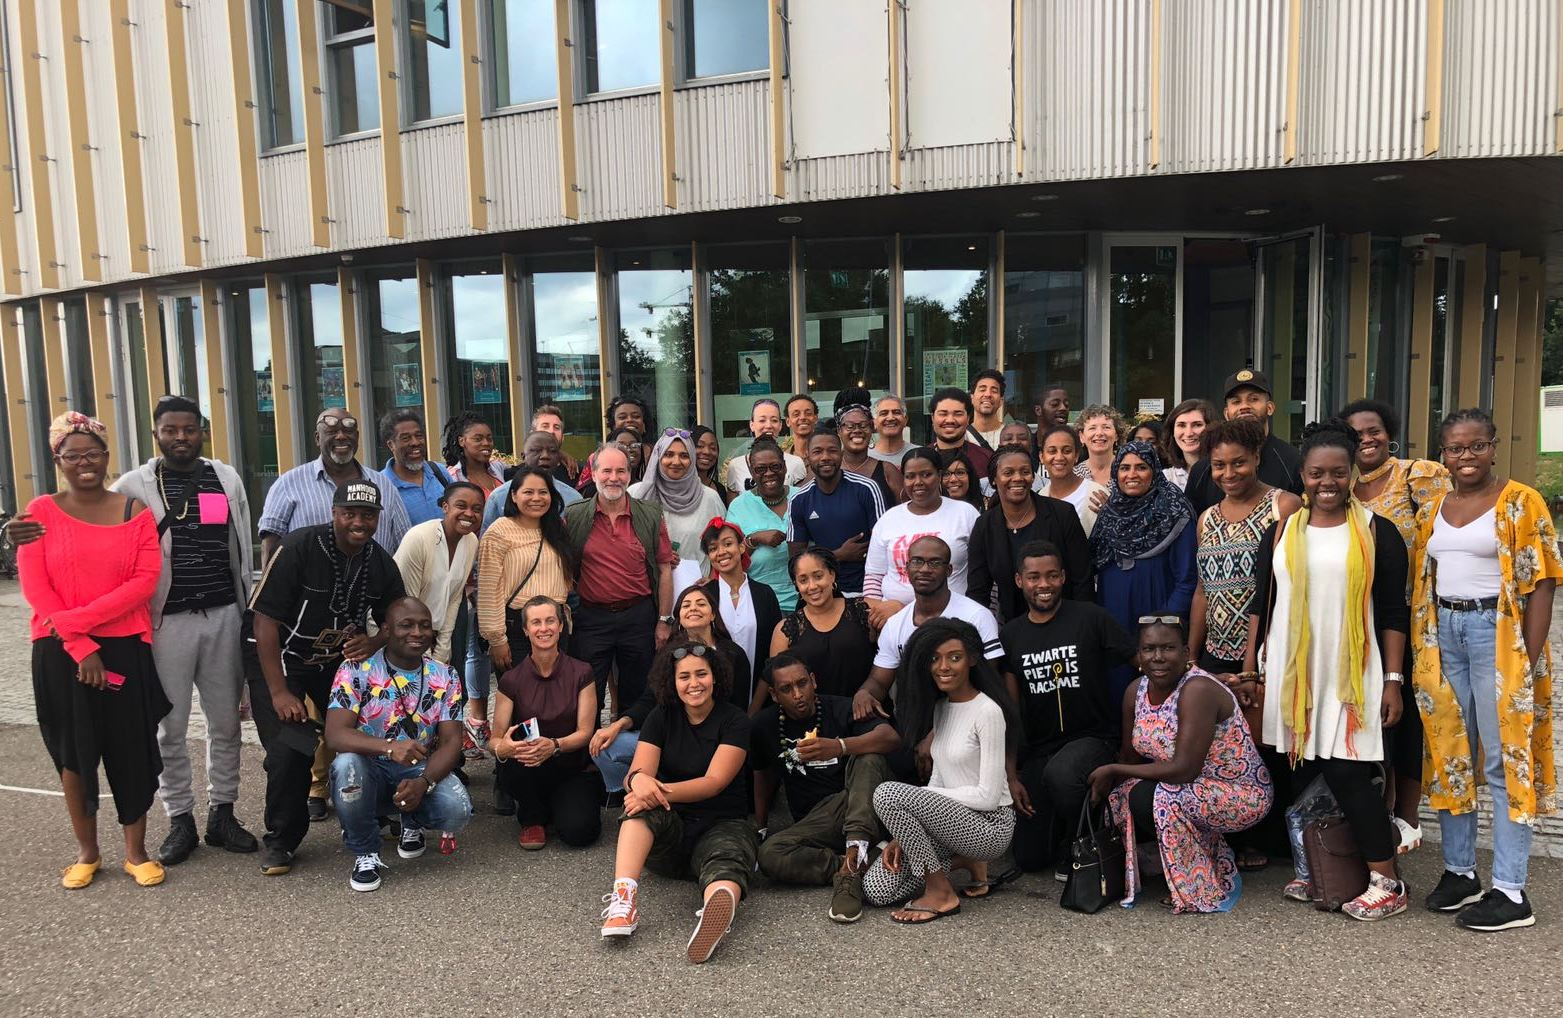 European Summer School  Our project - European Summer School: Towards Resilient Communities - provided training in community leadership and capacity building to small, mainly BME organisations.